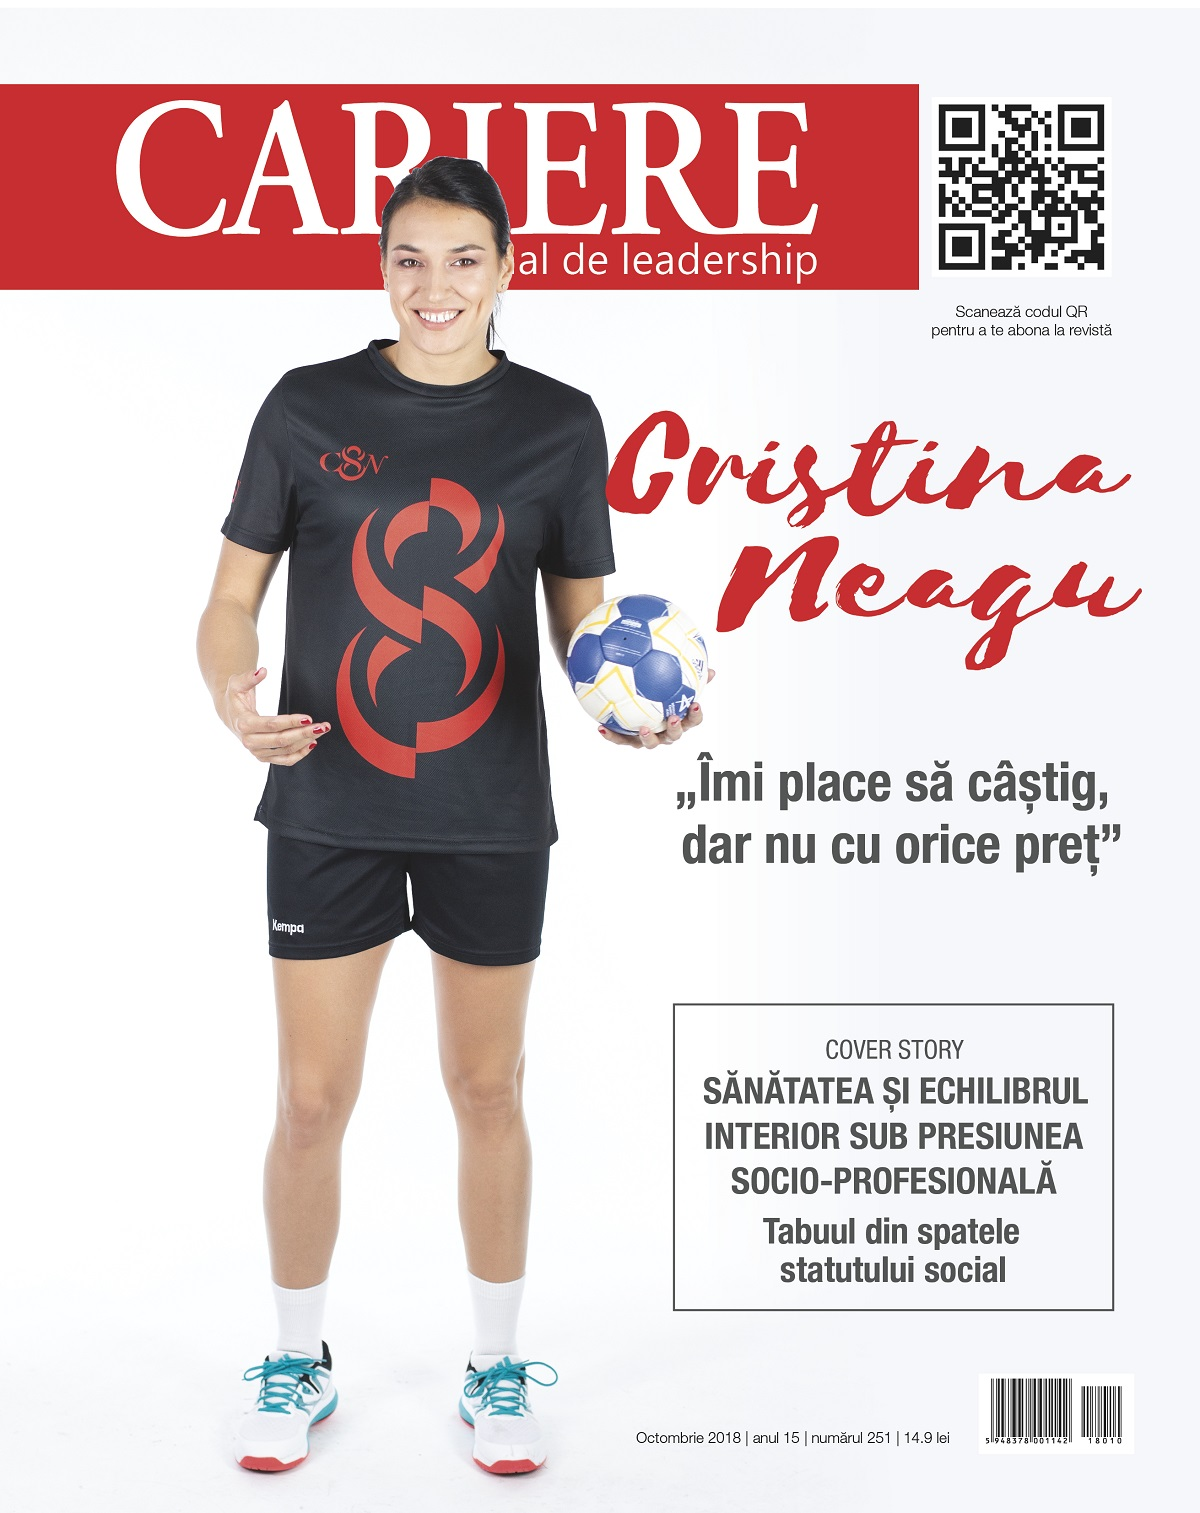 CARIERE no. 251, oct. 2018